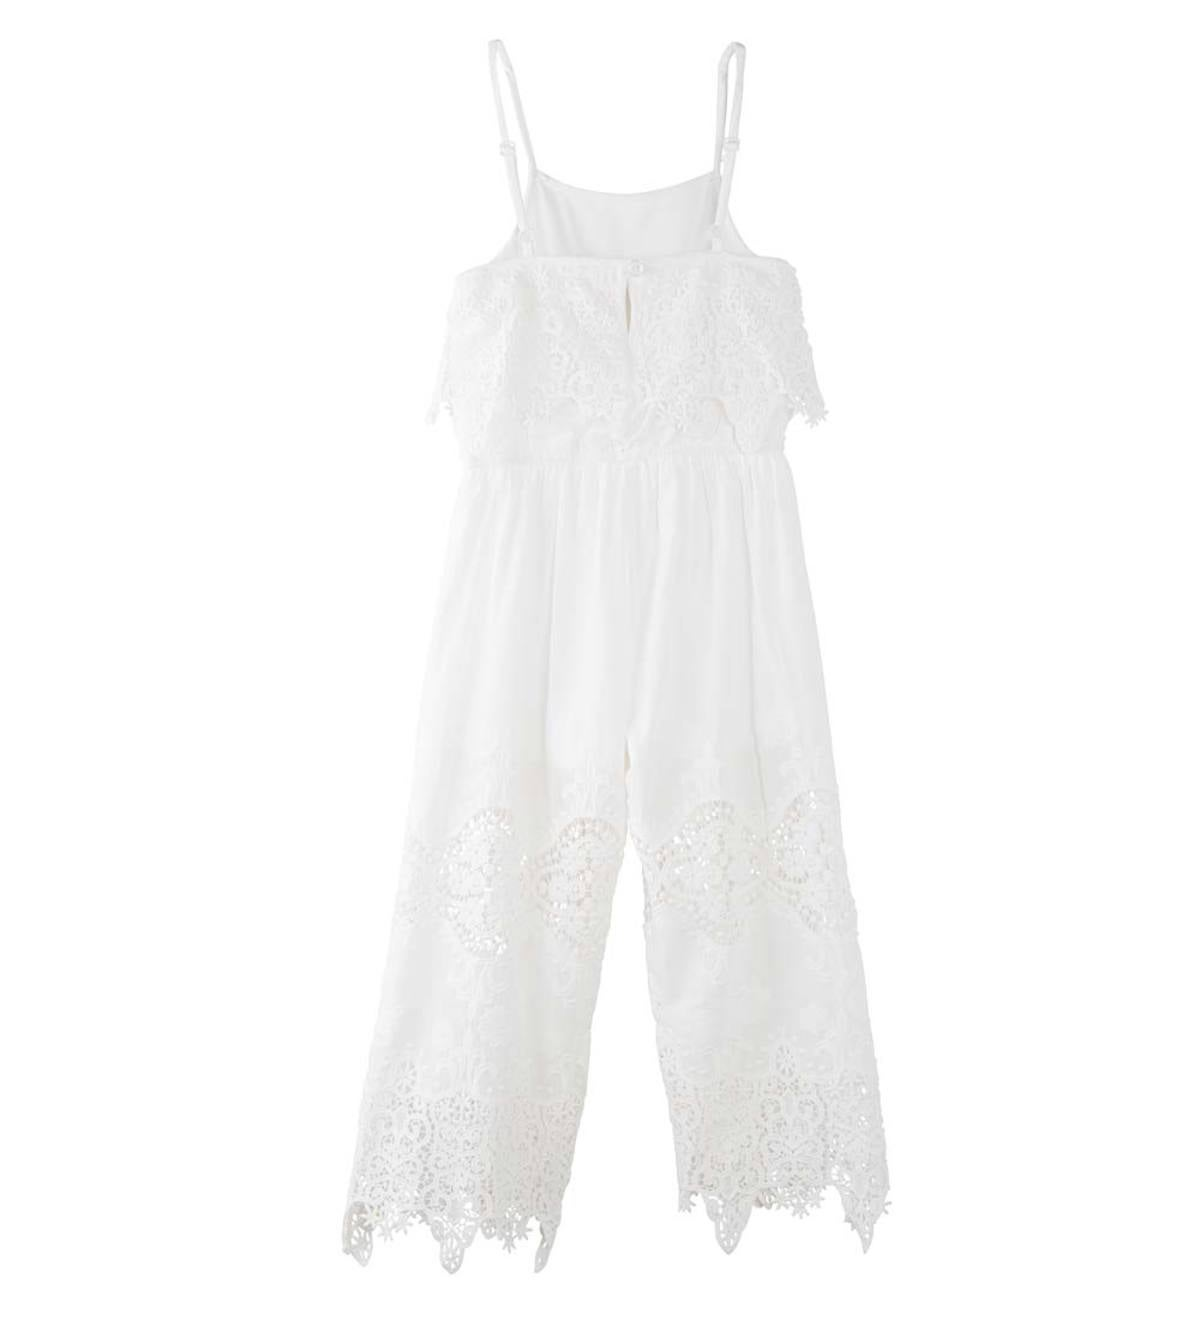 Sleeveless Lace Jumpsuit - WH - 6